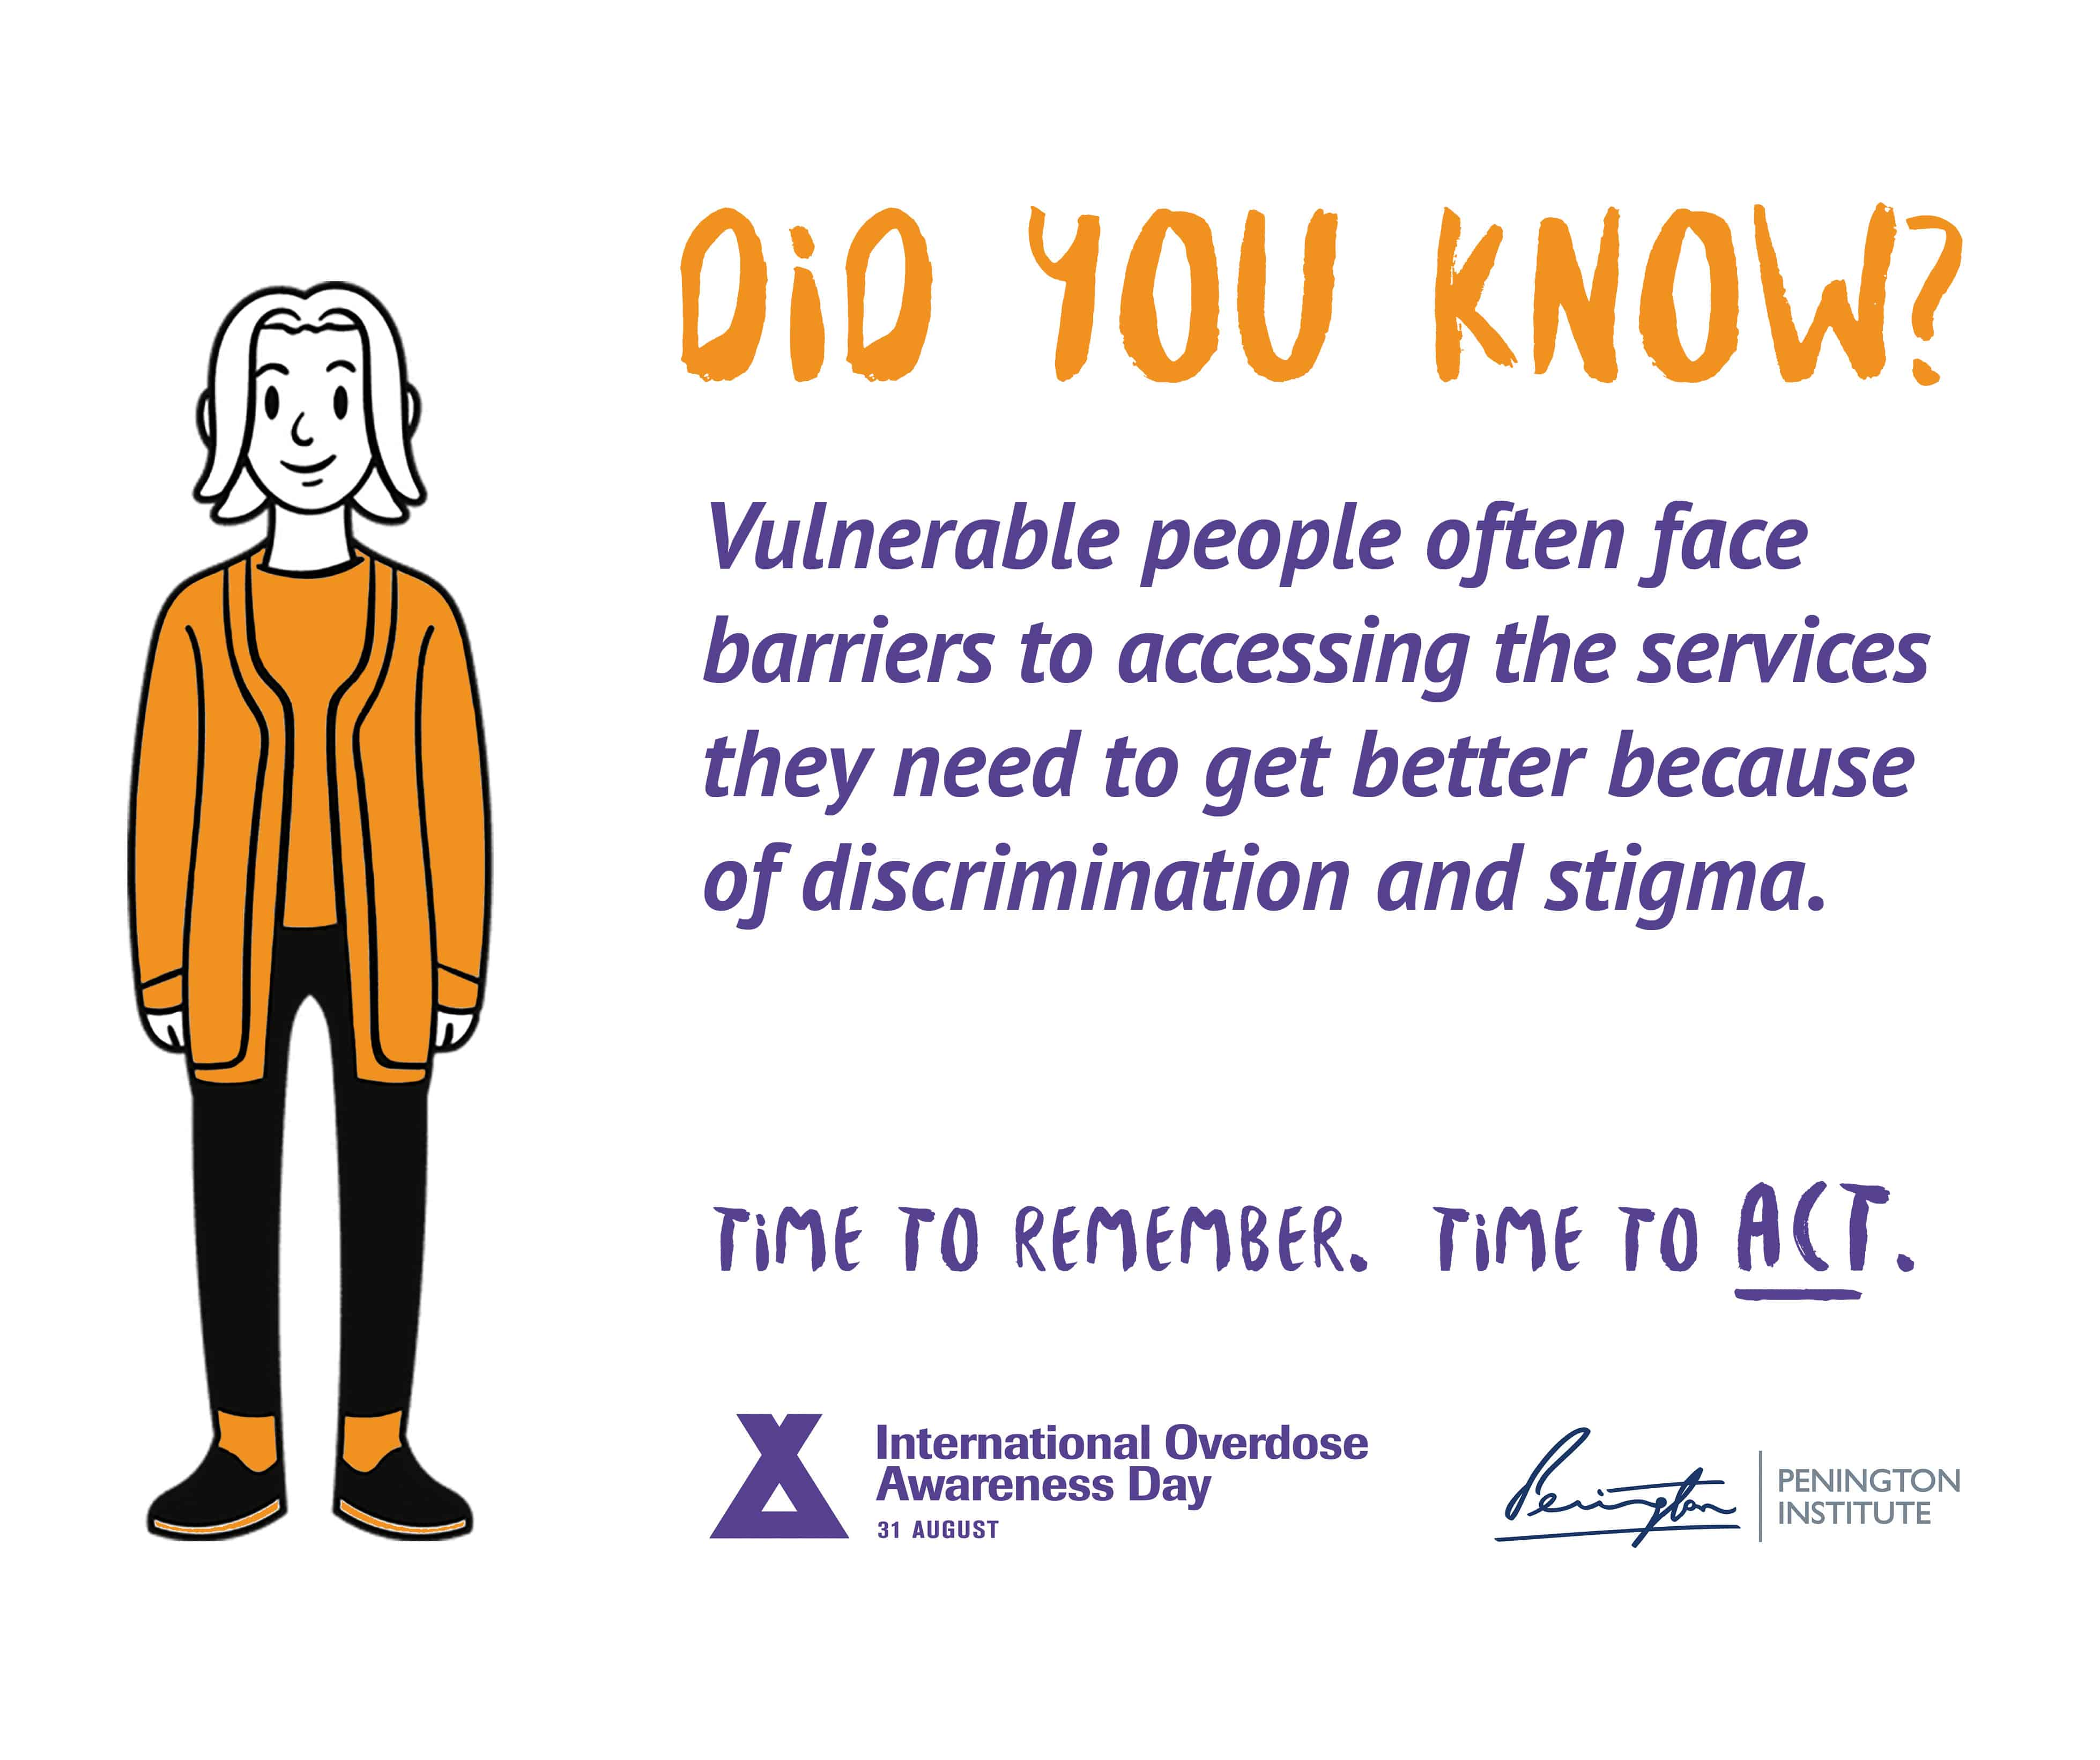 """A graphic from International Overdose Awareness Day and the Penington Institute. Heading reads """"DID YOU KNOW?"""" Text underneath reads: """"Vulnerable people often face barriers to accessing the services they need to get better because of discrimination and stigma. Time to remember. Time to act."""" A drawing of a person in an orange jacket stands alongside."""